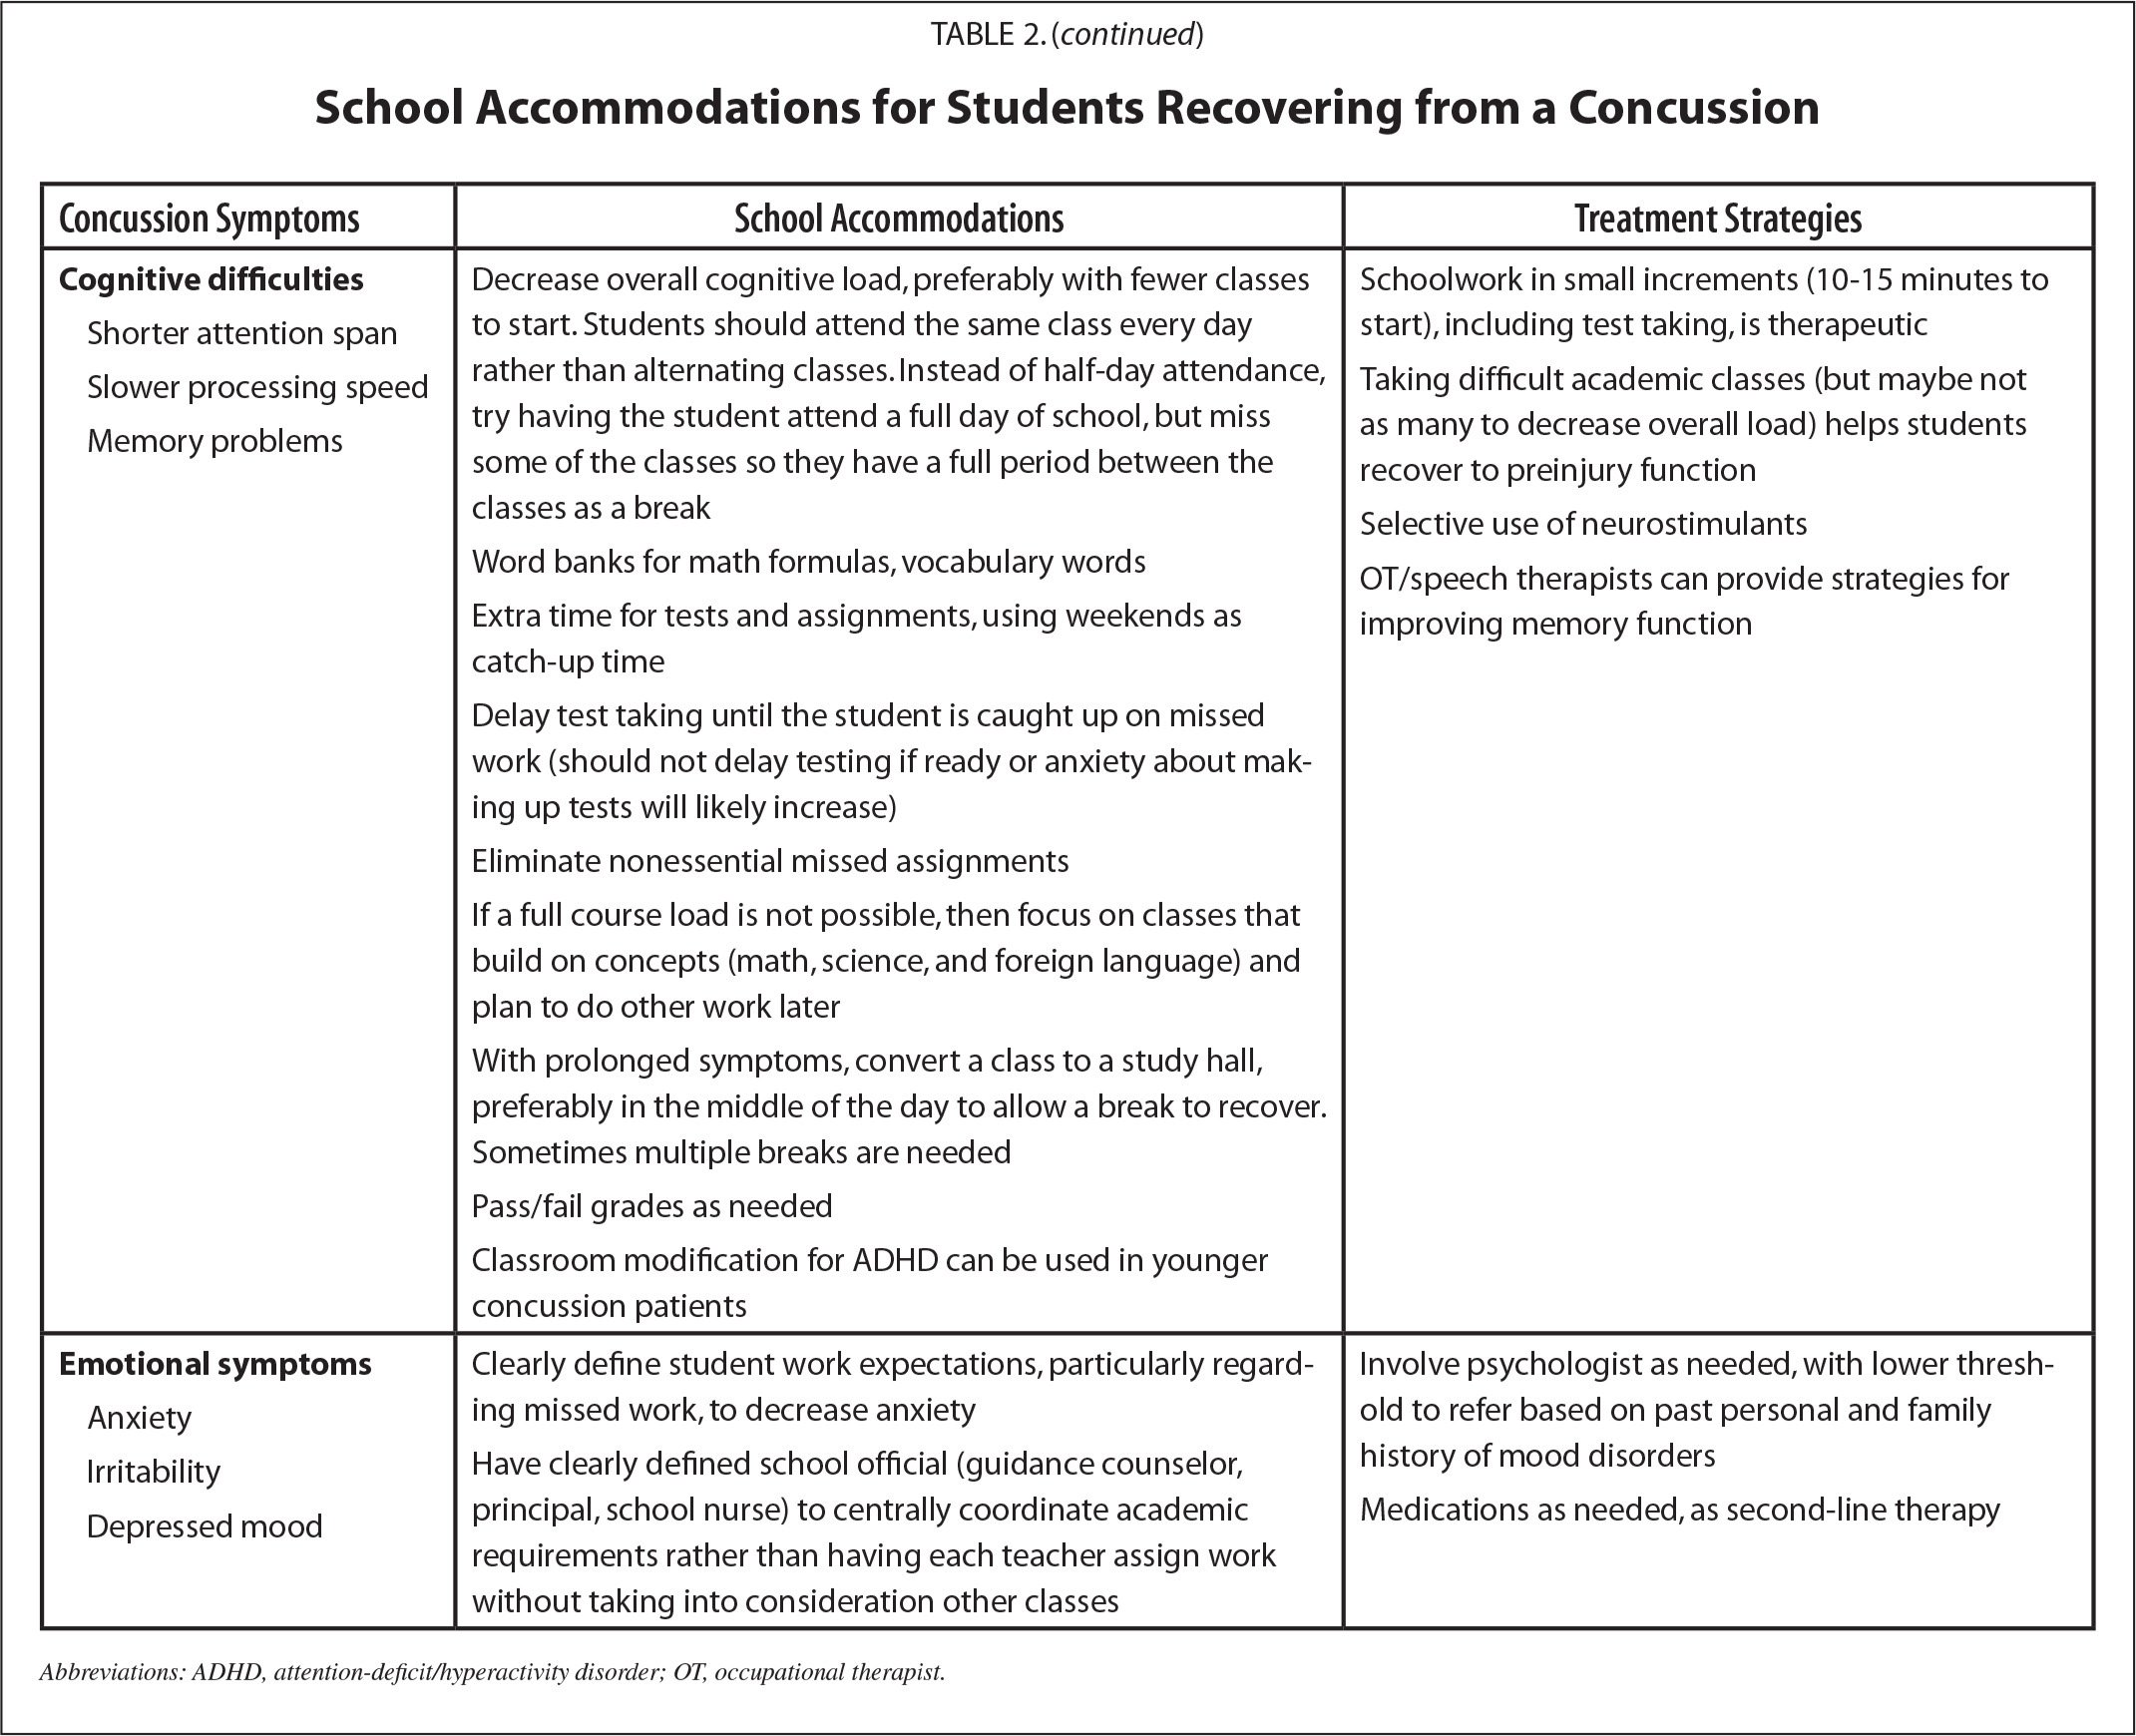 School Accommodations for Students Recovering from a Concussion